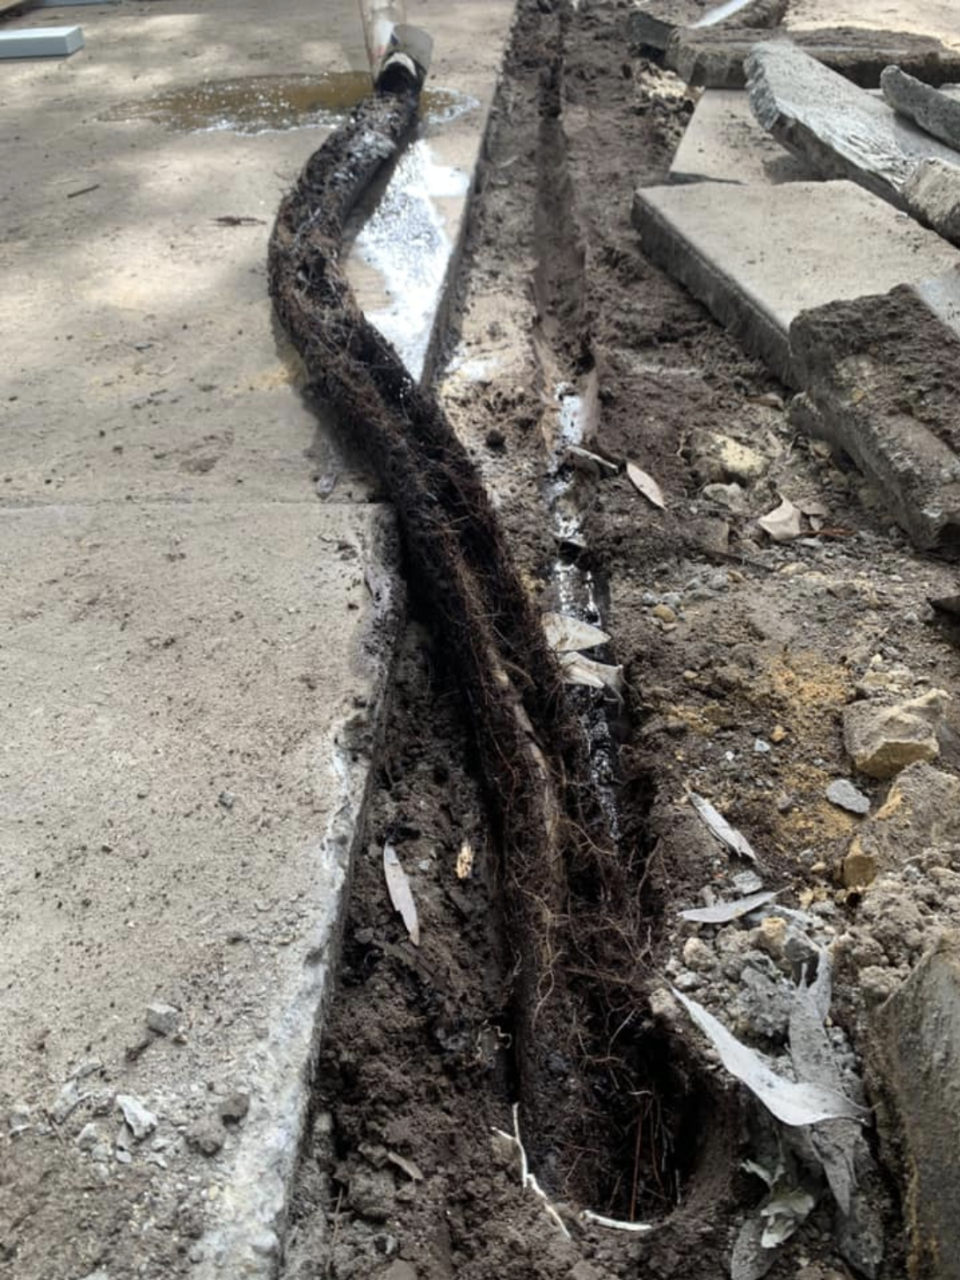 A clump of tree roots that looks like a snake after being pulled from a drain.